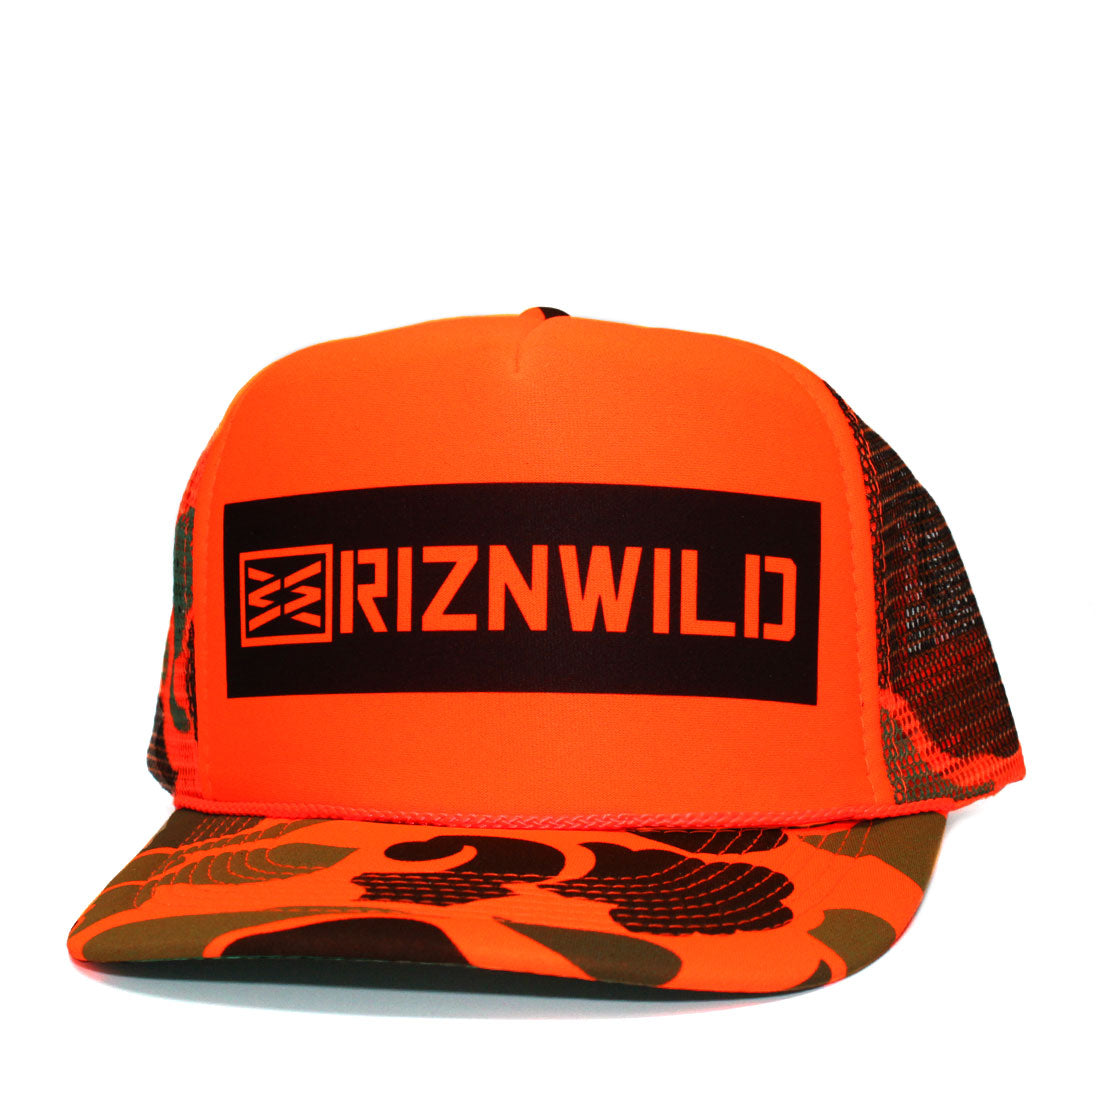 RIZNWILD | Neon Orange camo outdoors wilderness trucker hat